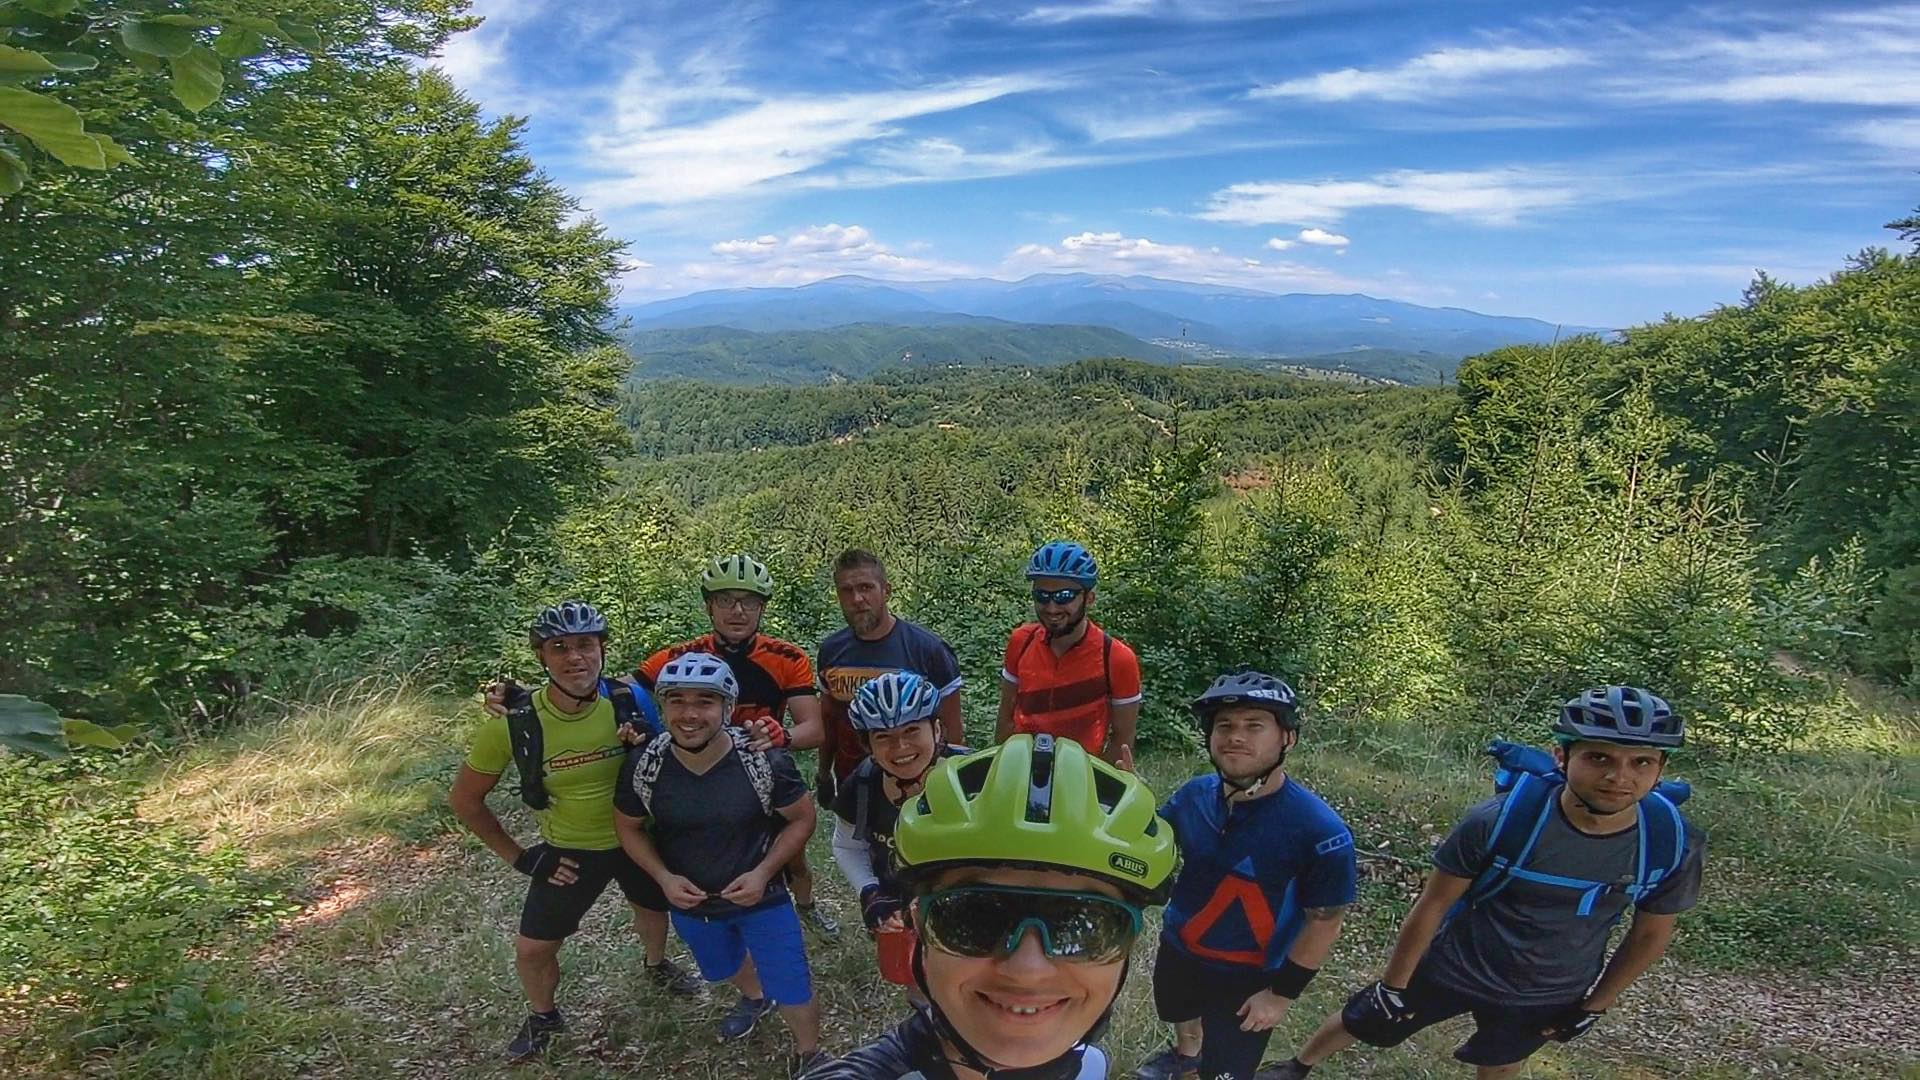 MTB Skills and Boot Camp 26 – 28 iulie 2019 la Campulung Muscel